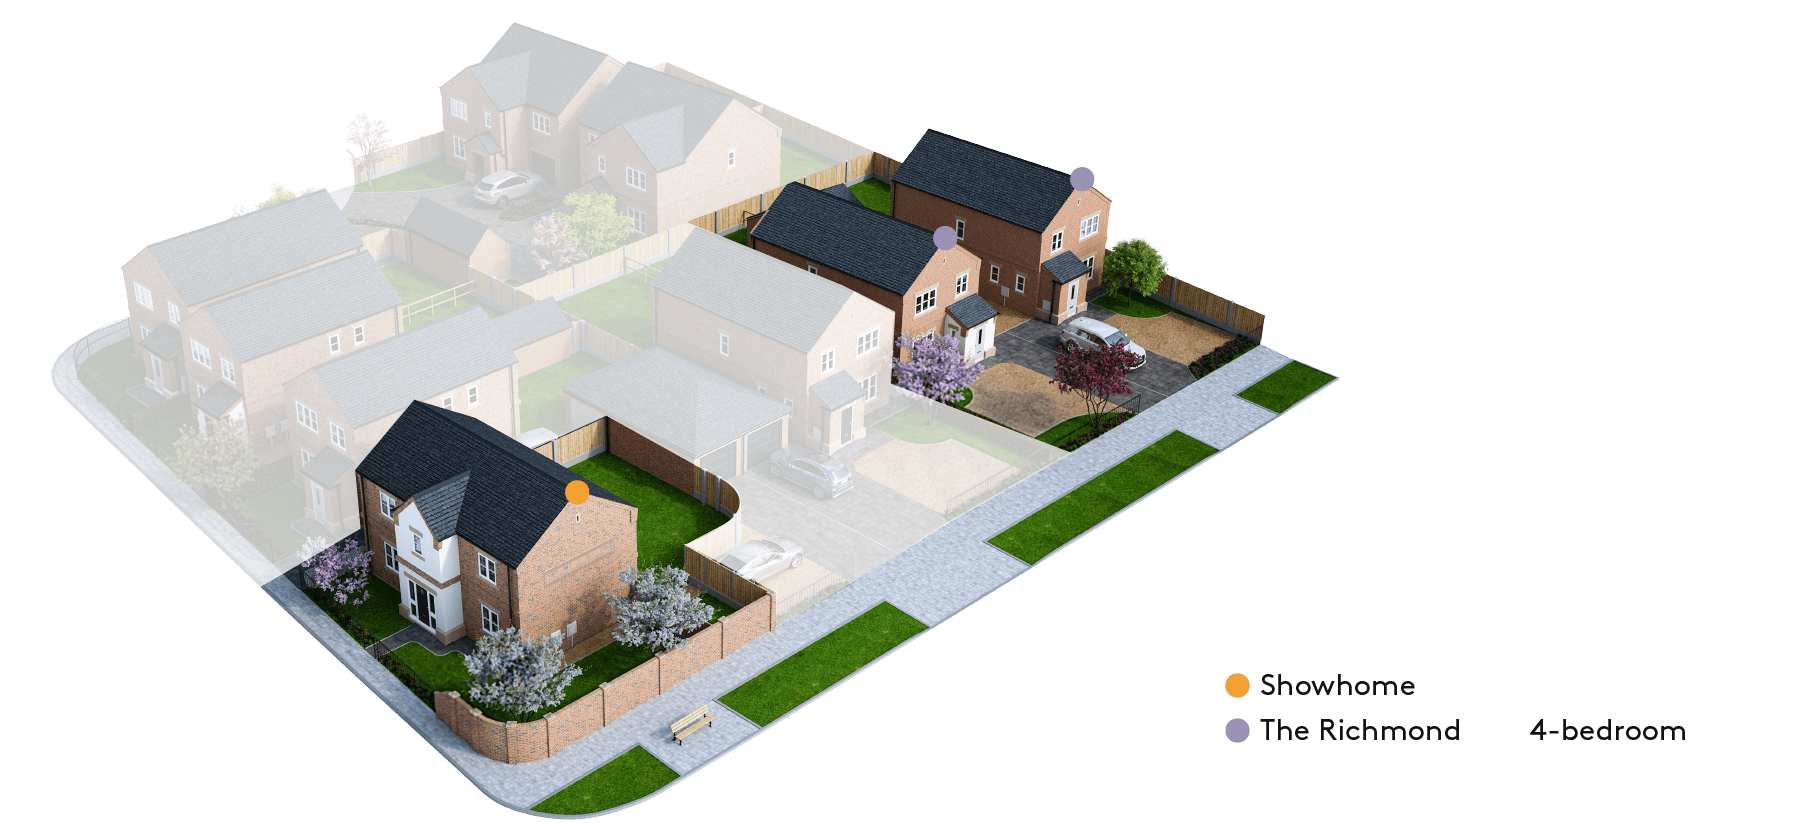 Finningley Court site plan – phase 1